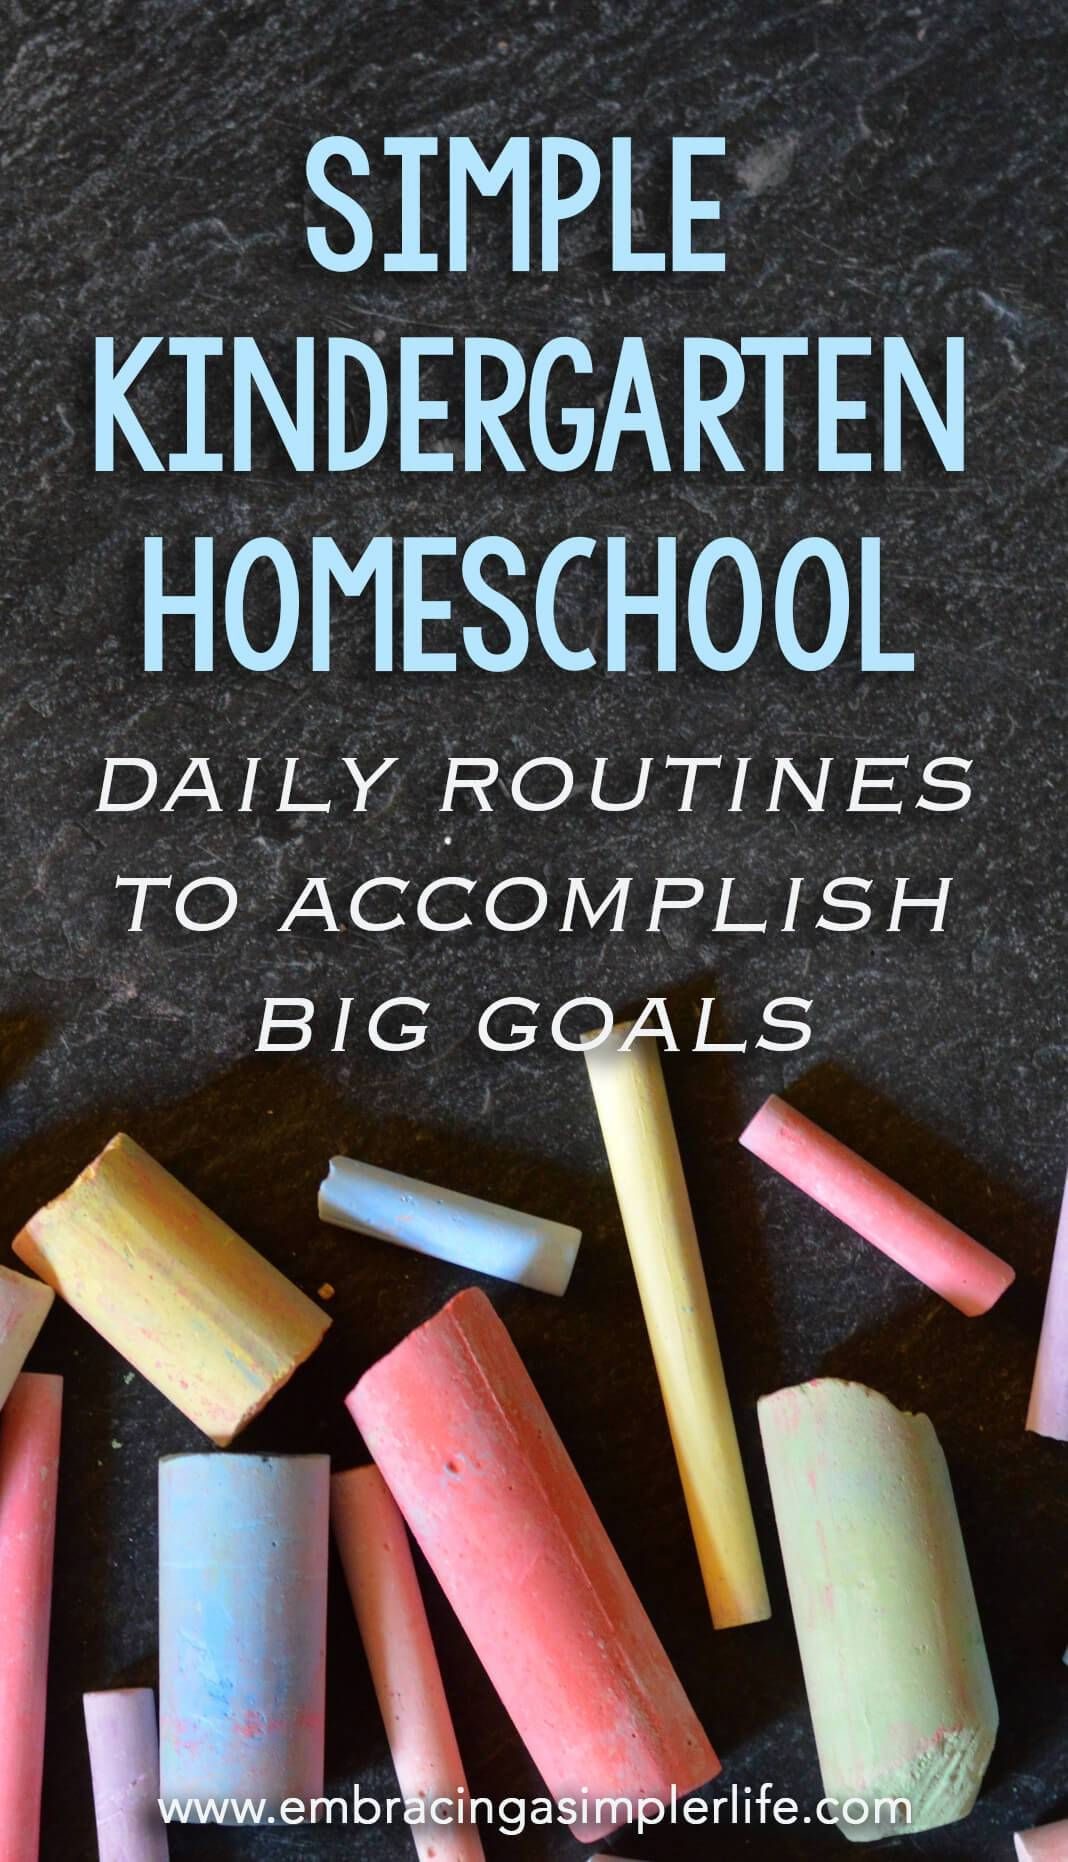 Simple Kindergarten Homeschool Daily Routines To